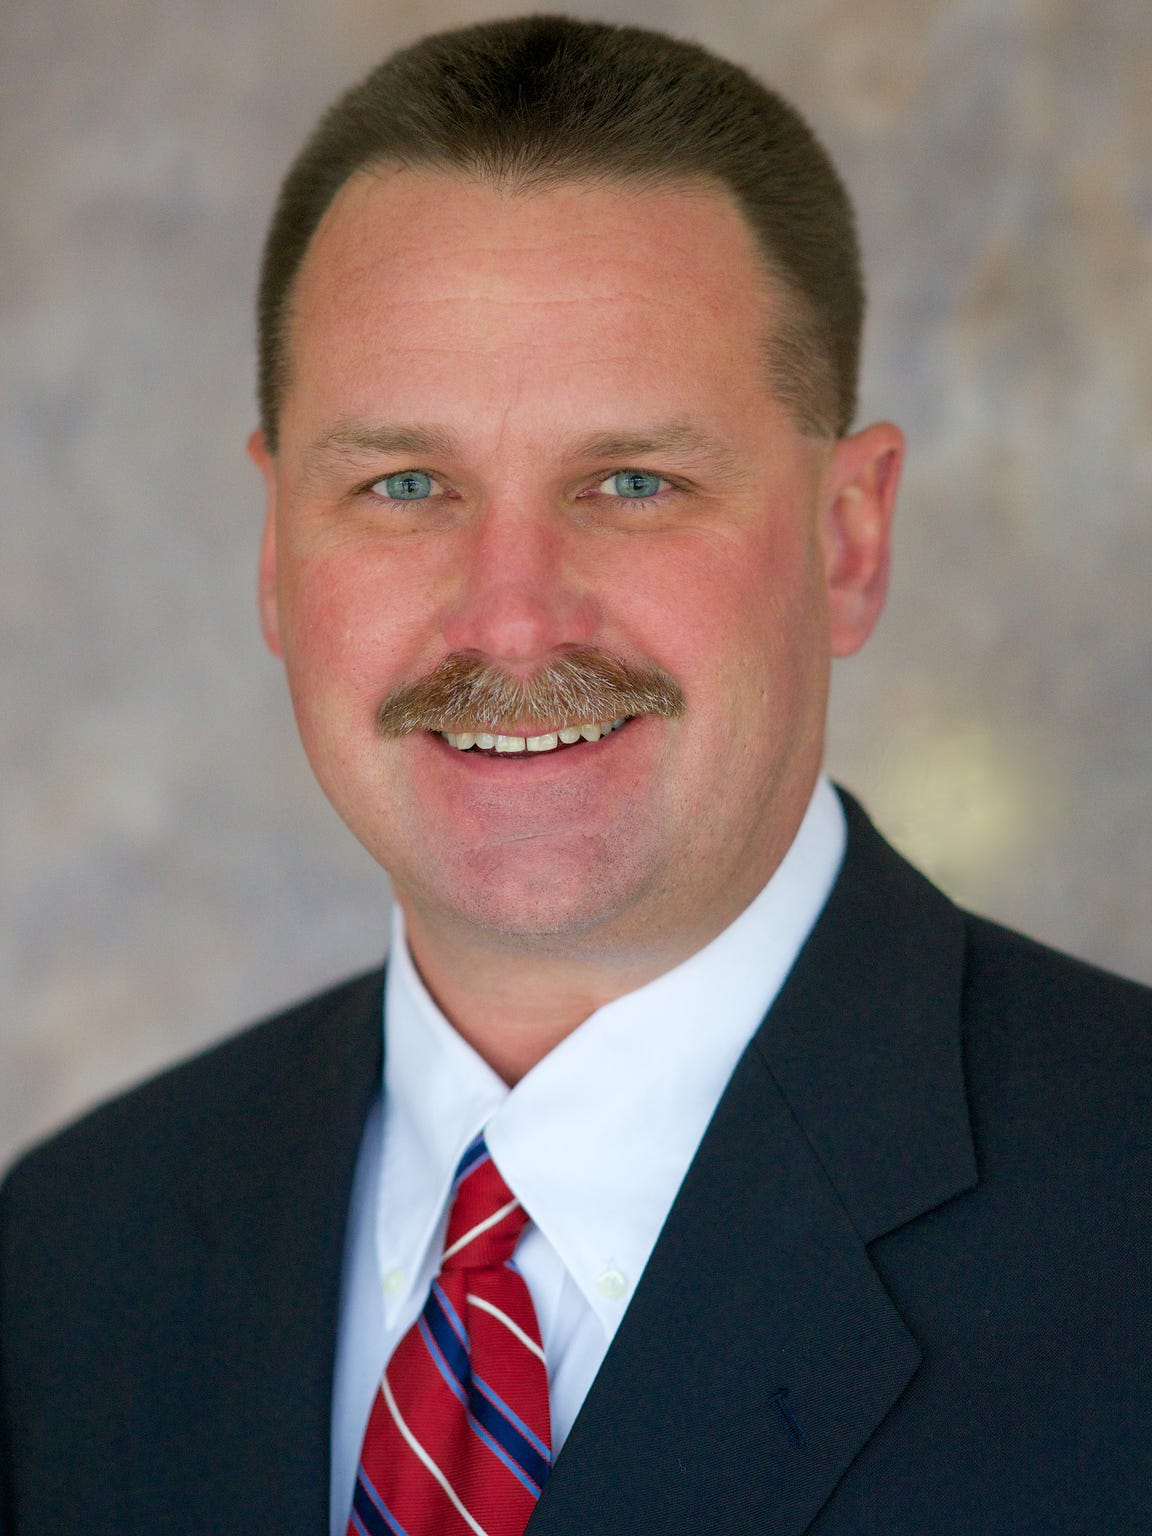 Brent Bailey is the Republican candidate for Central District PSC.